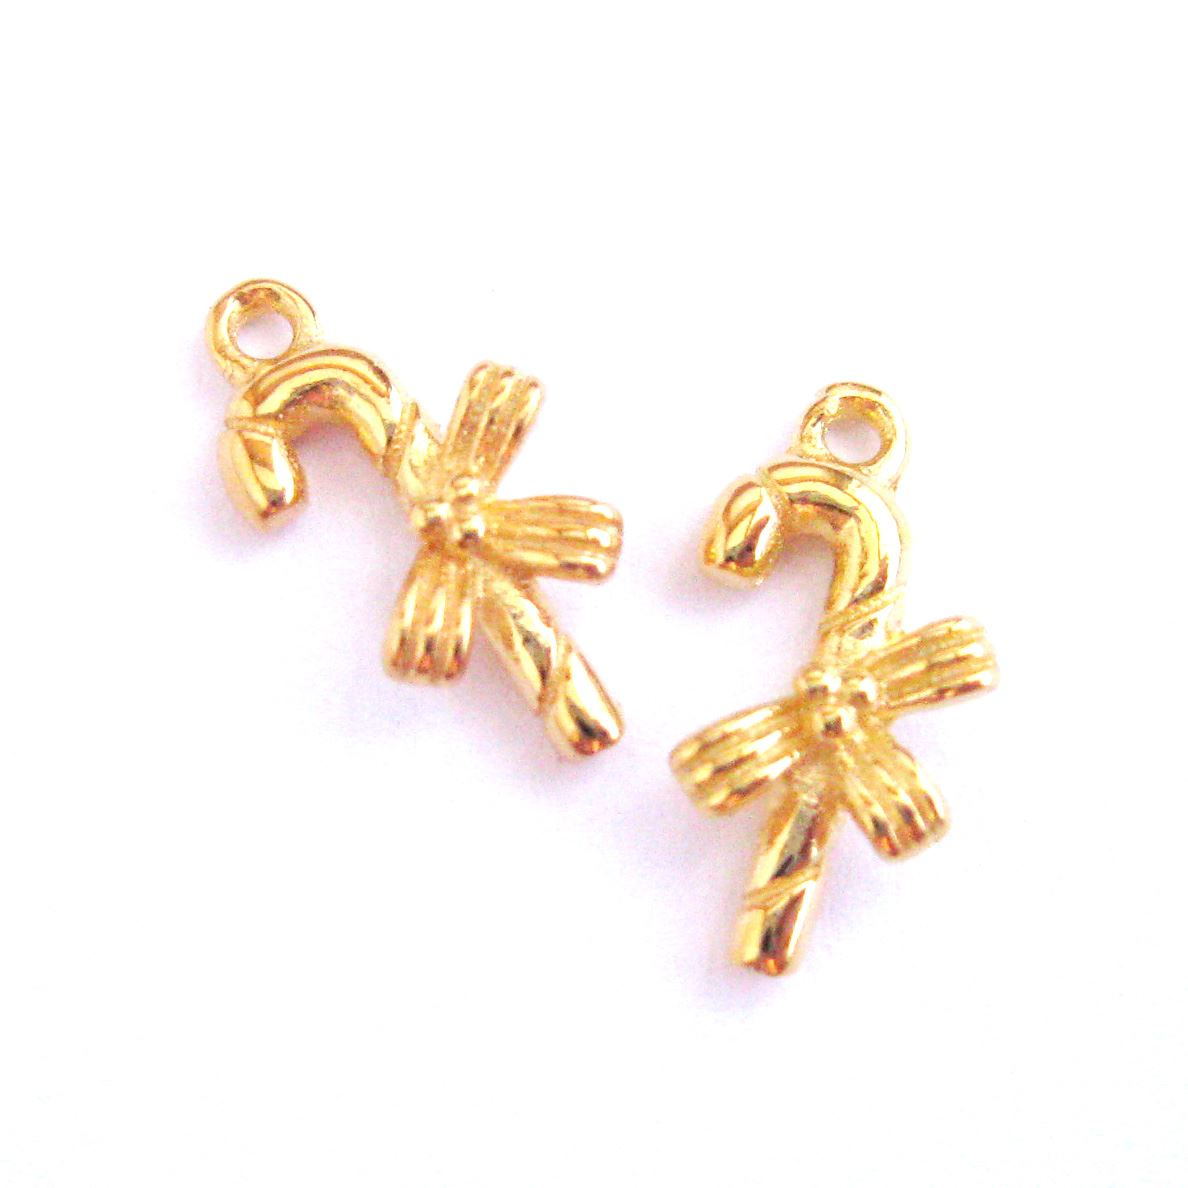 22K Gold plated Sterling Silver Charms, 925 Sterling Silver Candy Cane Charm- Holiday Charm - 12mm ( 2 pcs)